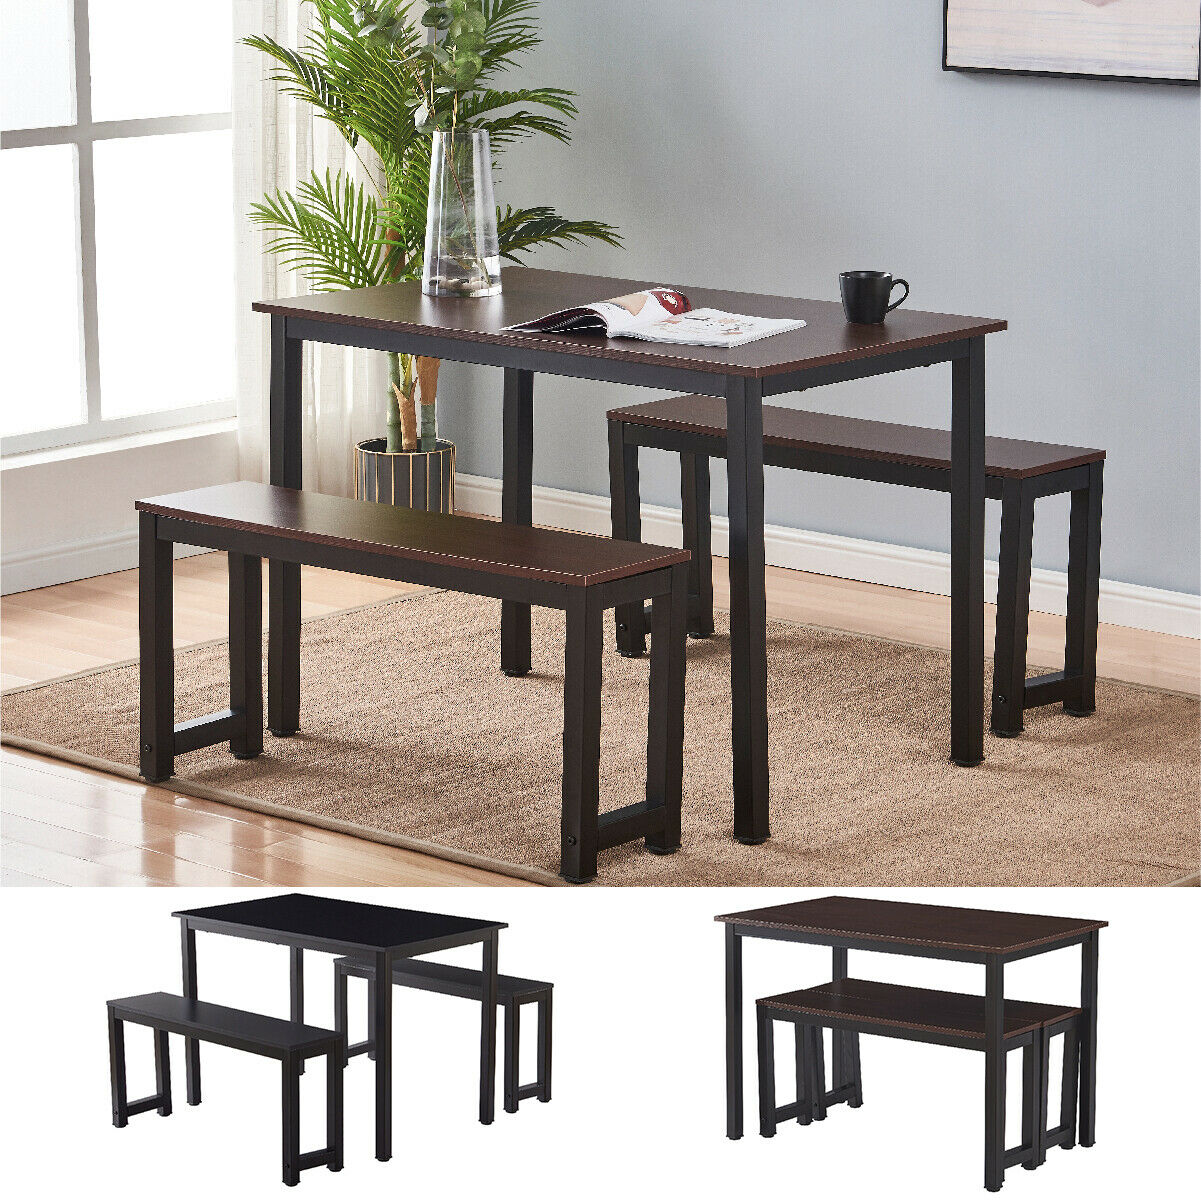 3 piece dining table set with 2